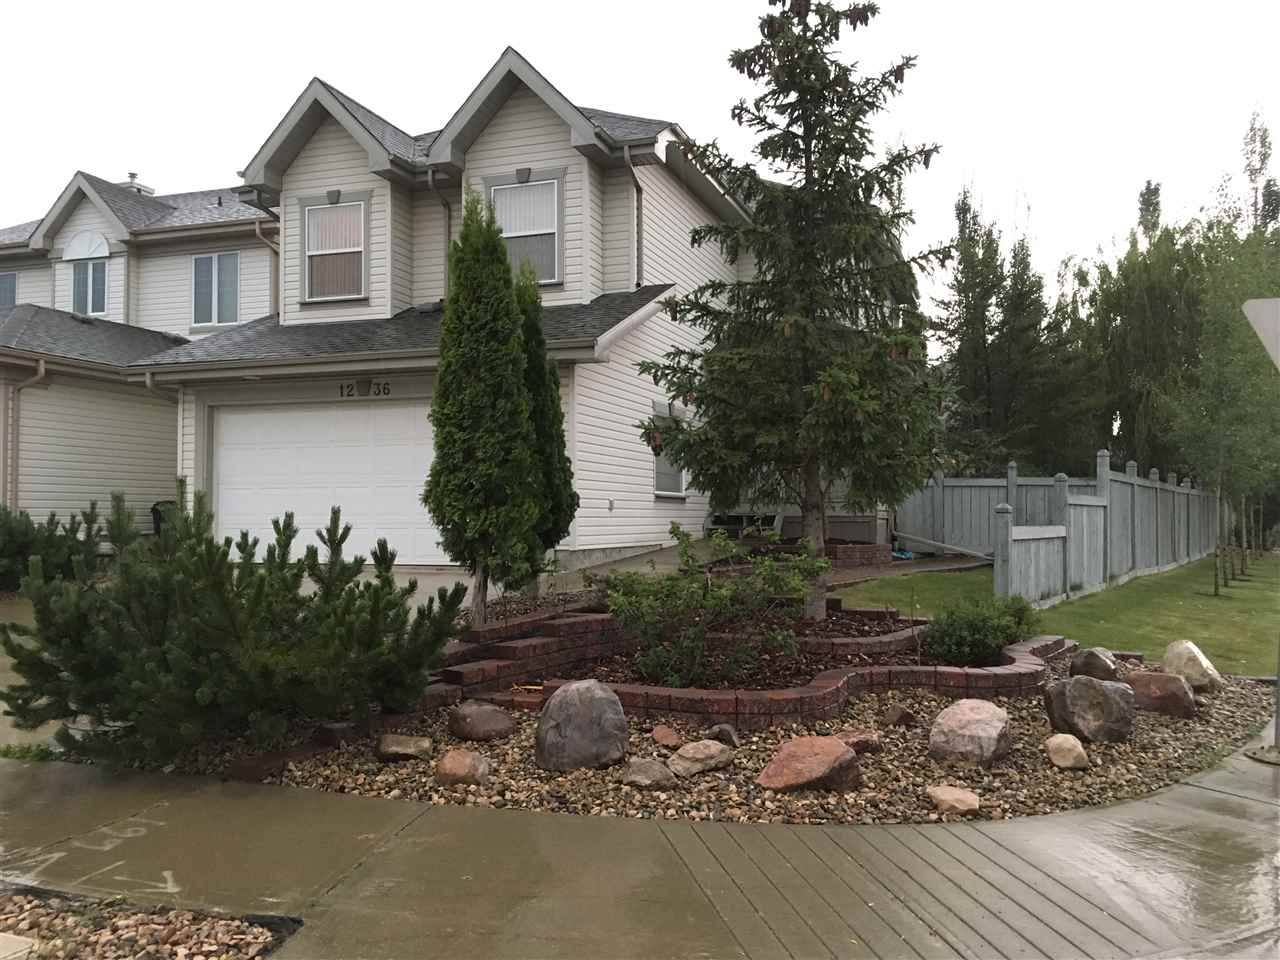 Main Photo: 1236 118 Street in Edmonton: Zone 16 House for sale : MLS®# E4115555